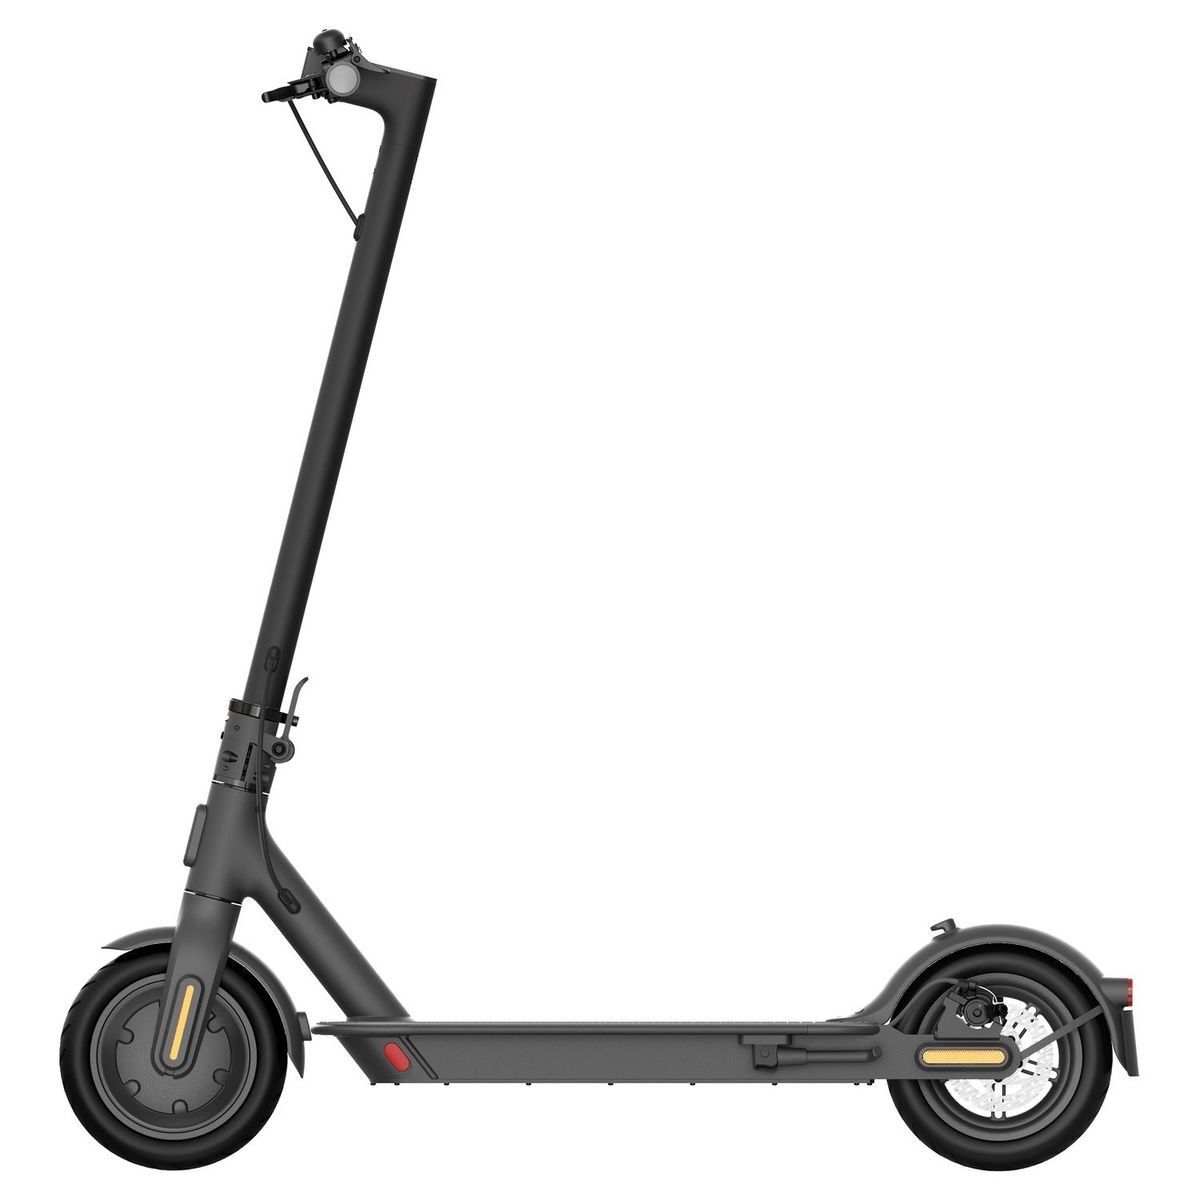 Trottinette électrique Mi Electric Scooter Essential - Gris/Jaune